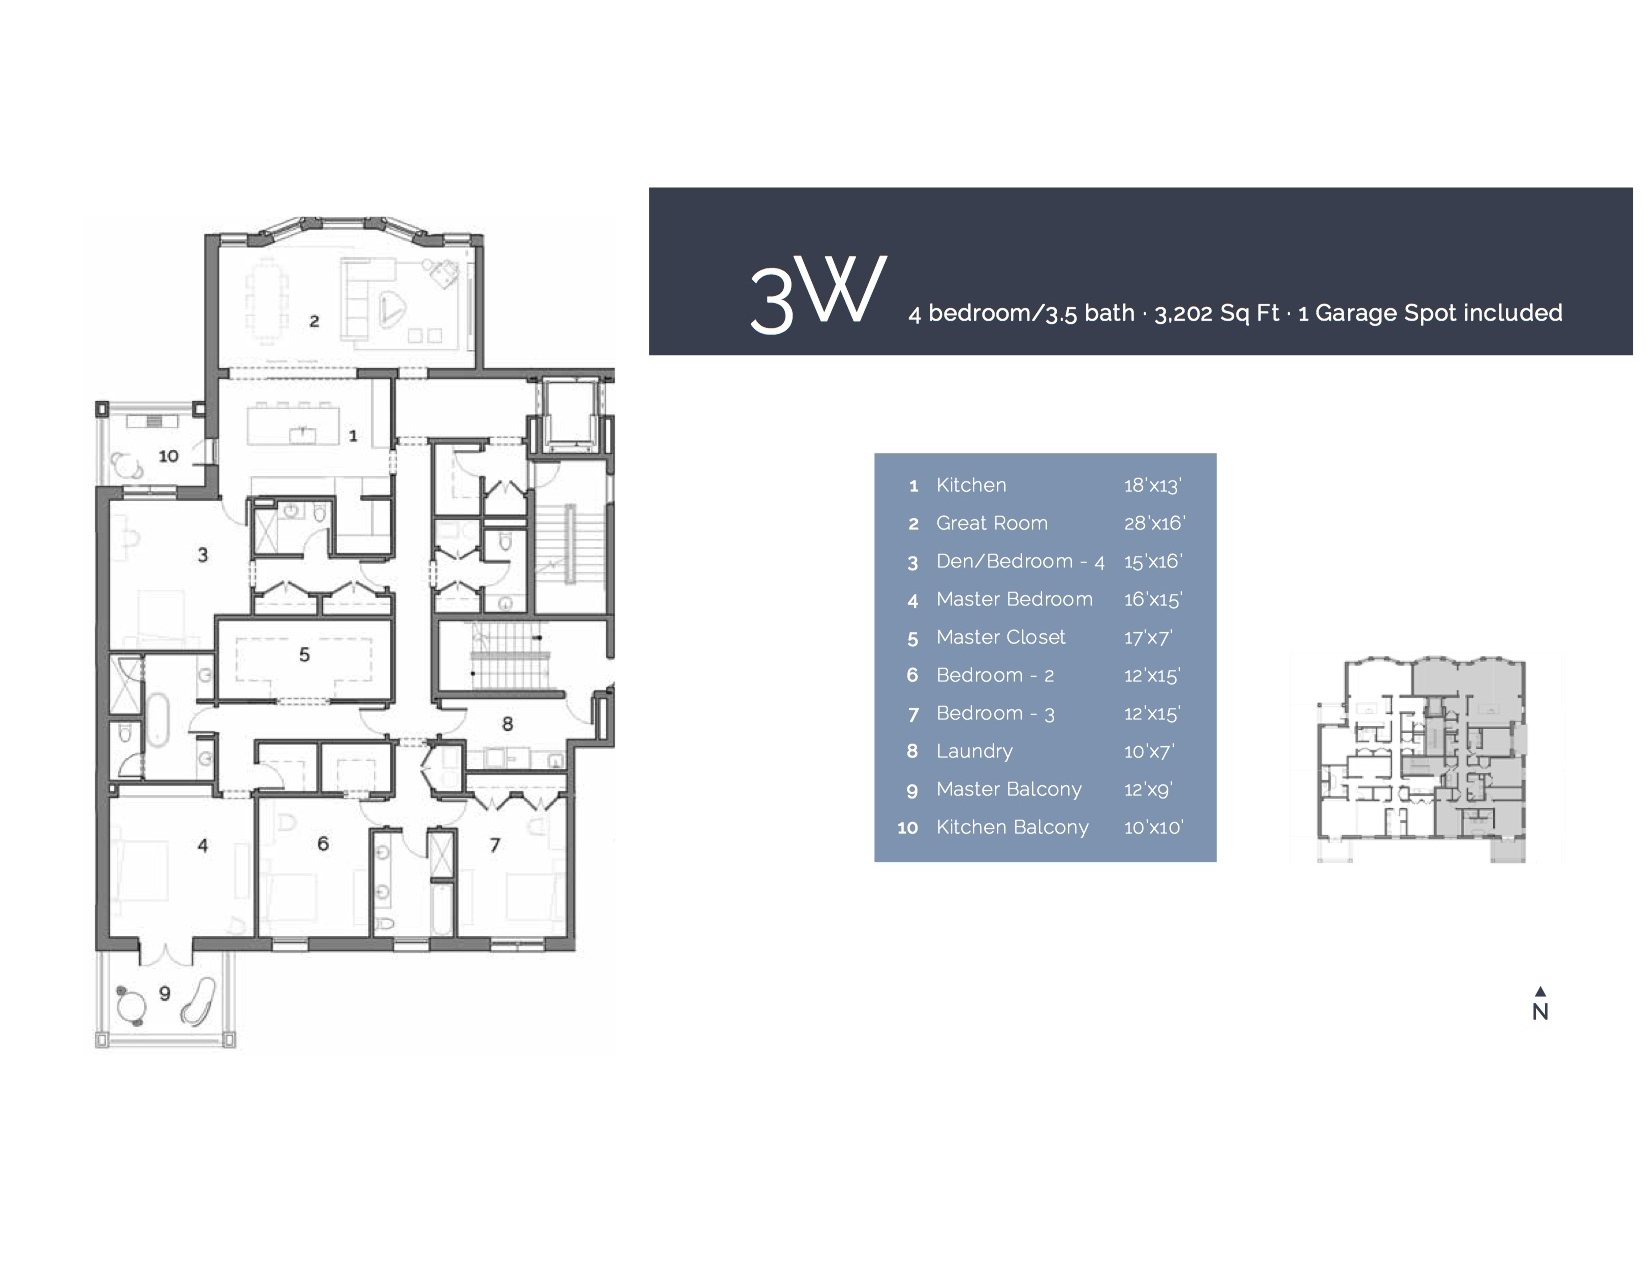 3W  — 4 Bedroom/3.5 Bath, 3202 sf.